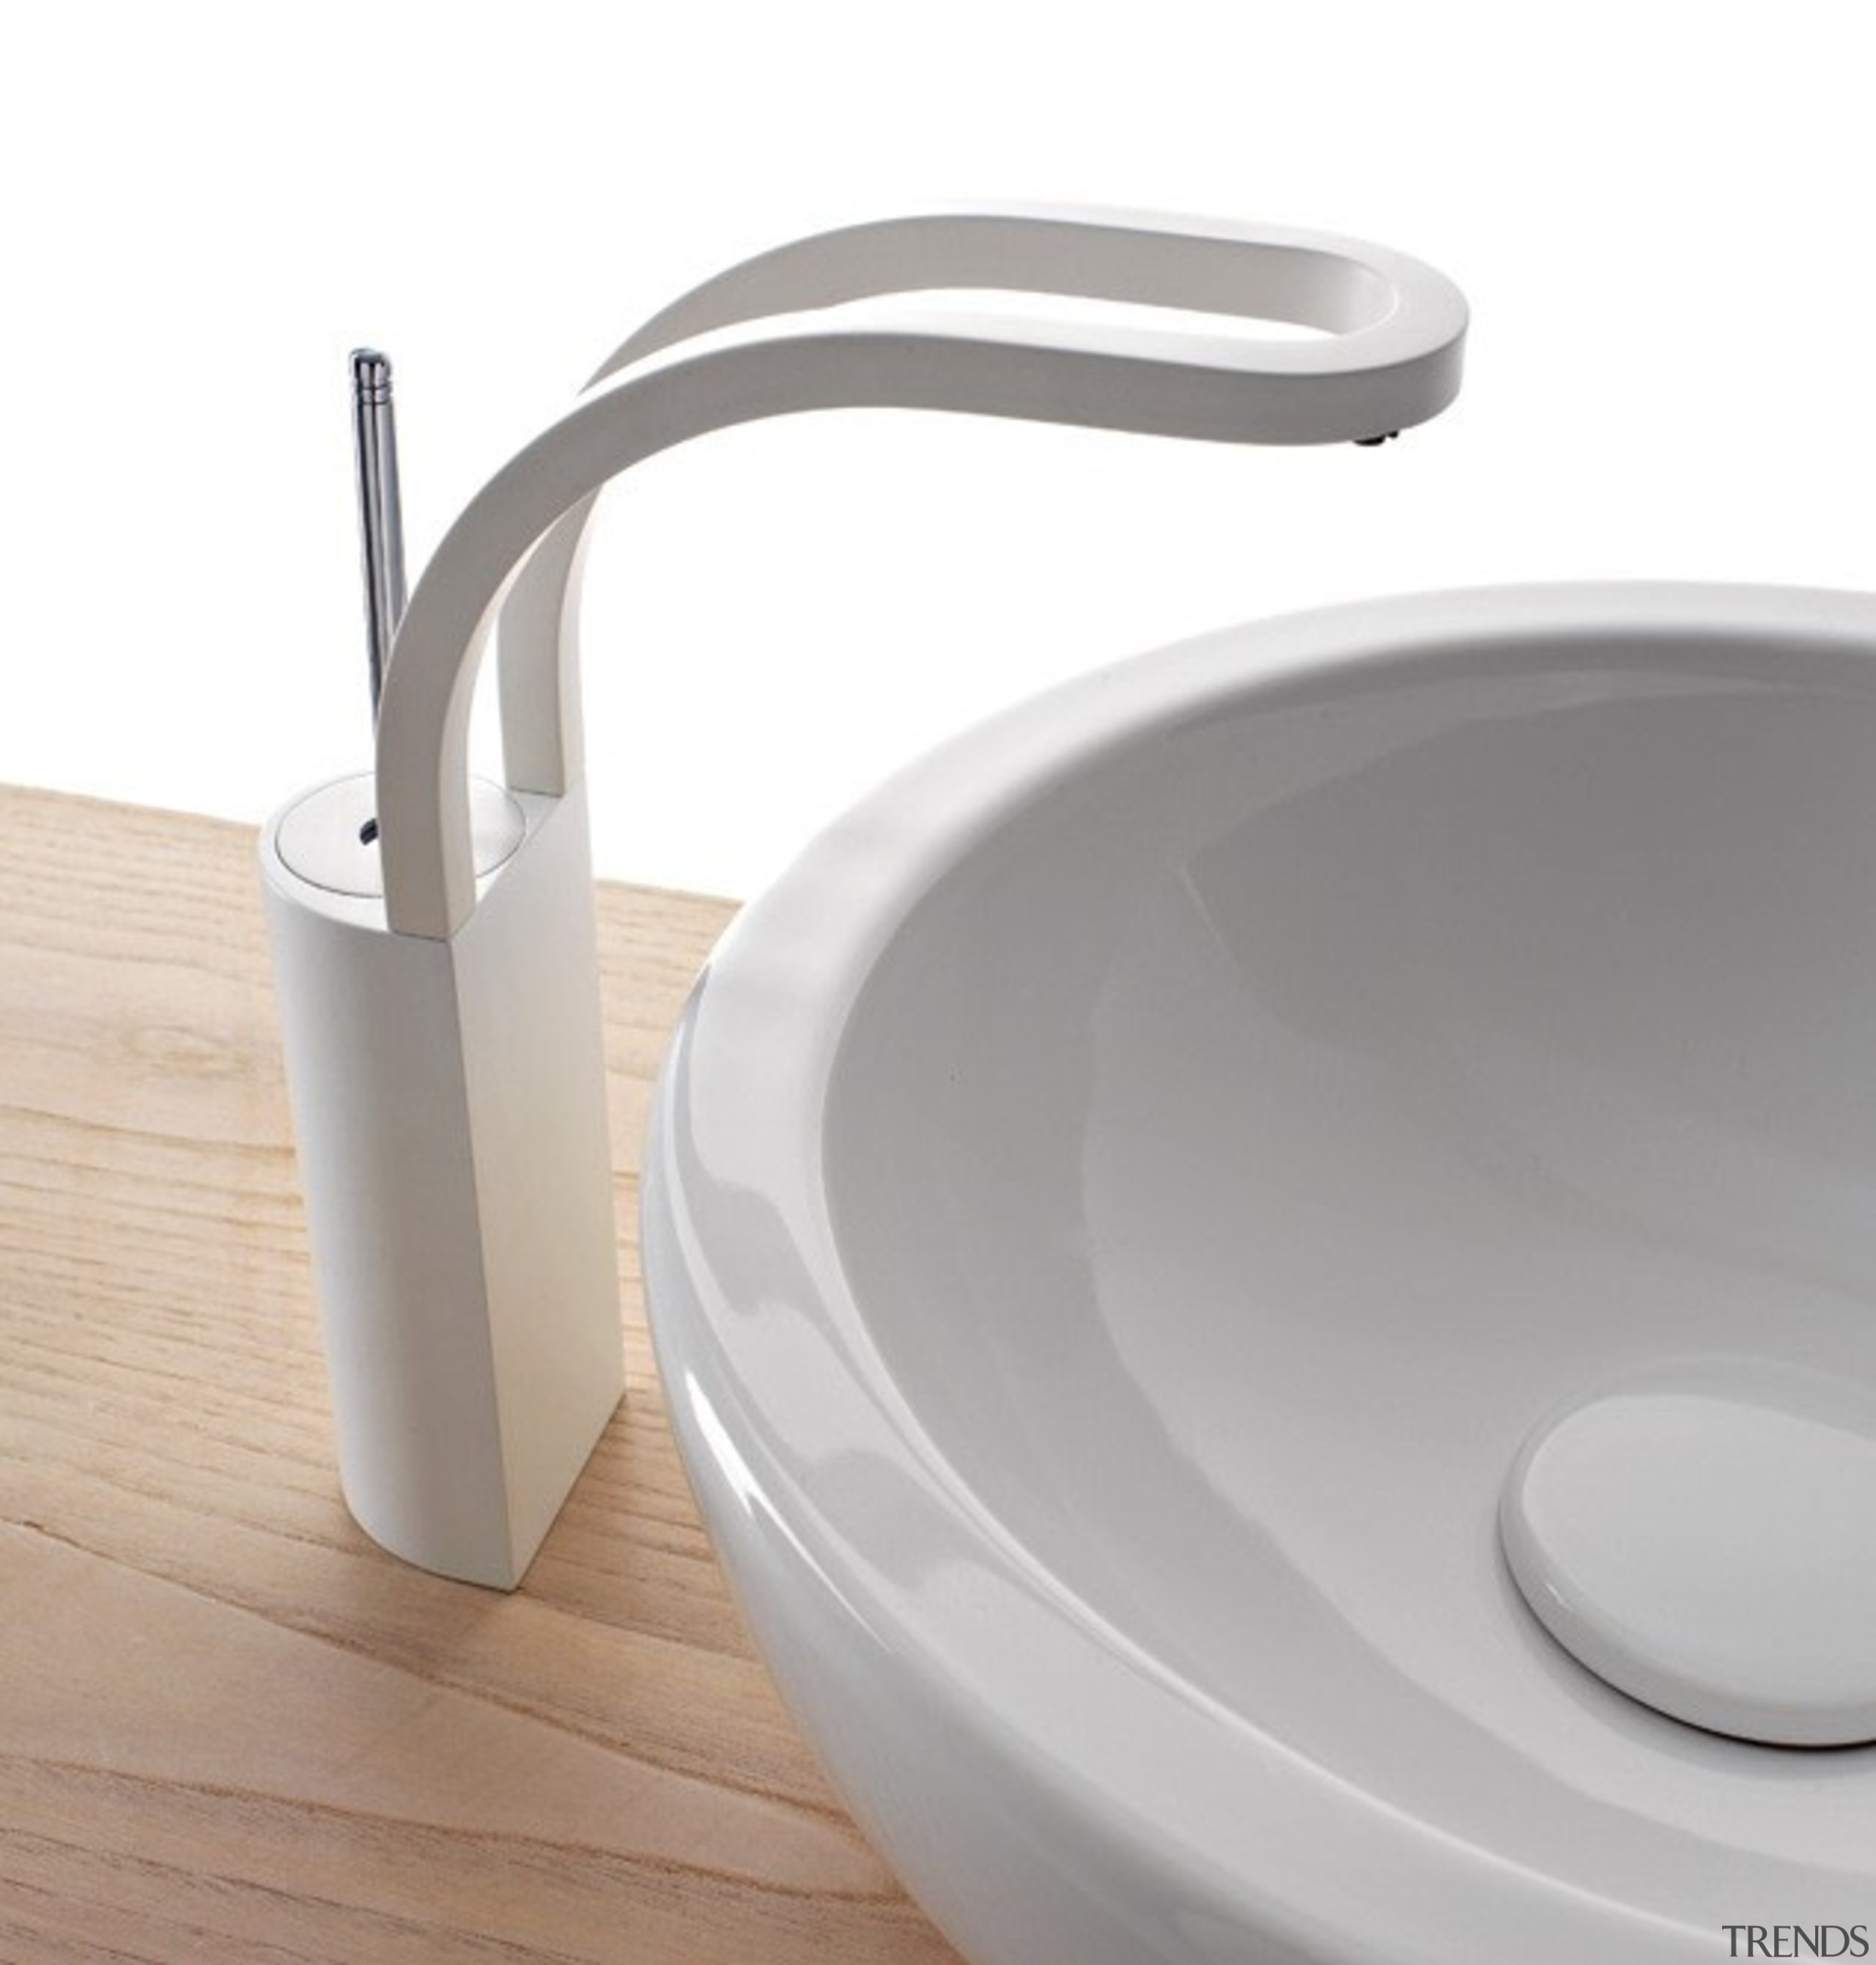 Trenz 04 - bathroom sink | hardware | bathroom sink, hardware, plumbing fixture, product, product design, sink, tap, toilet seat, white, gray